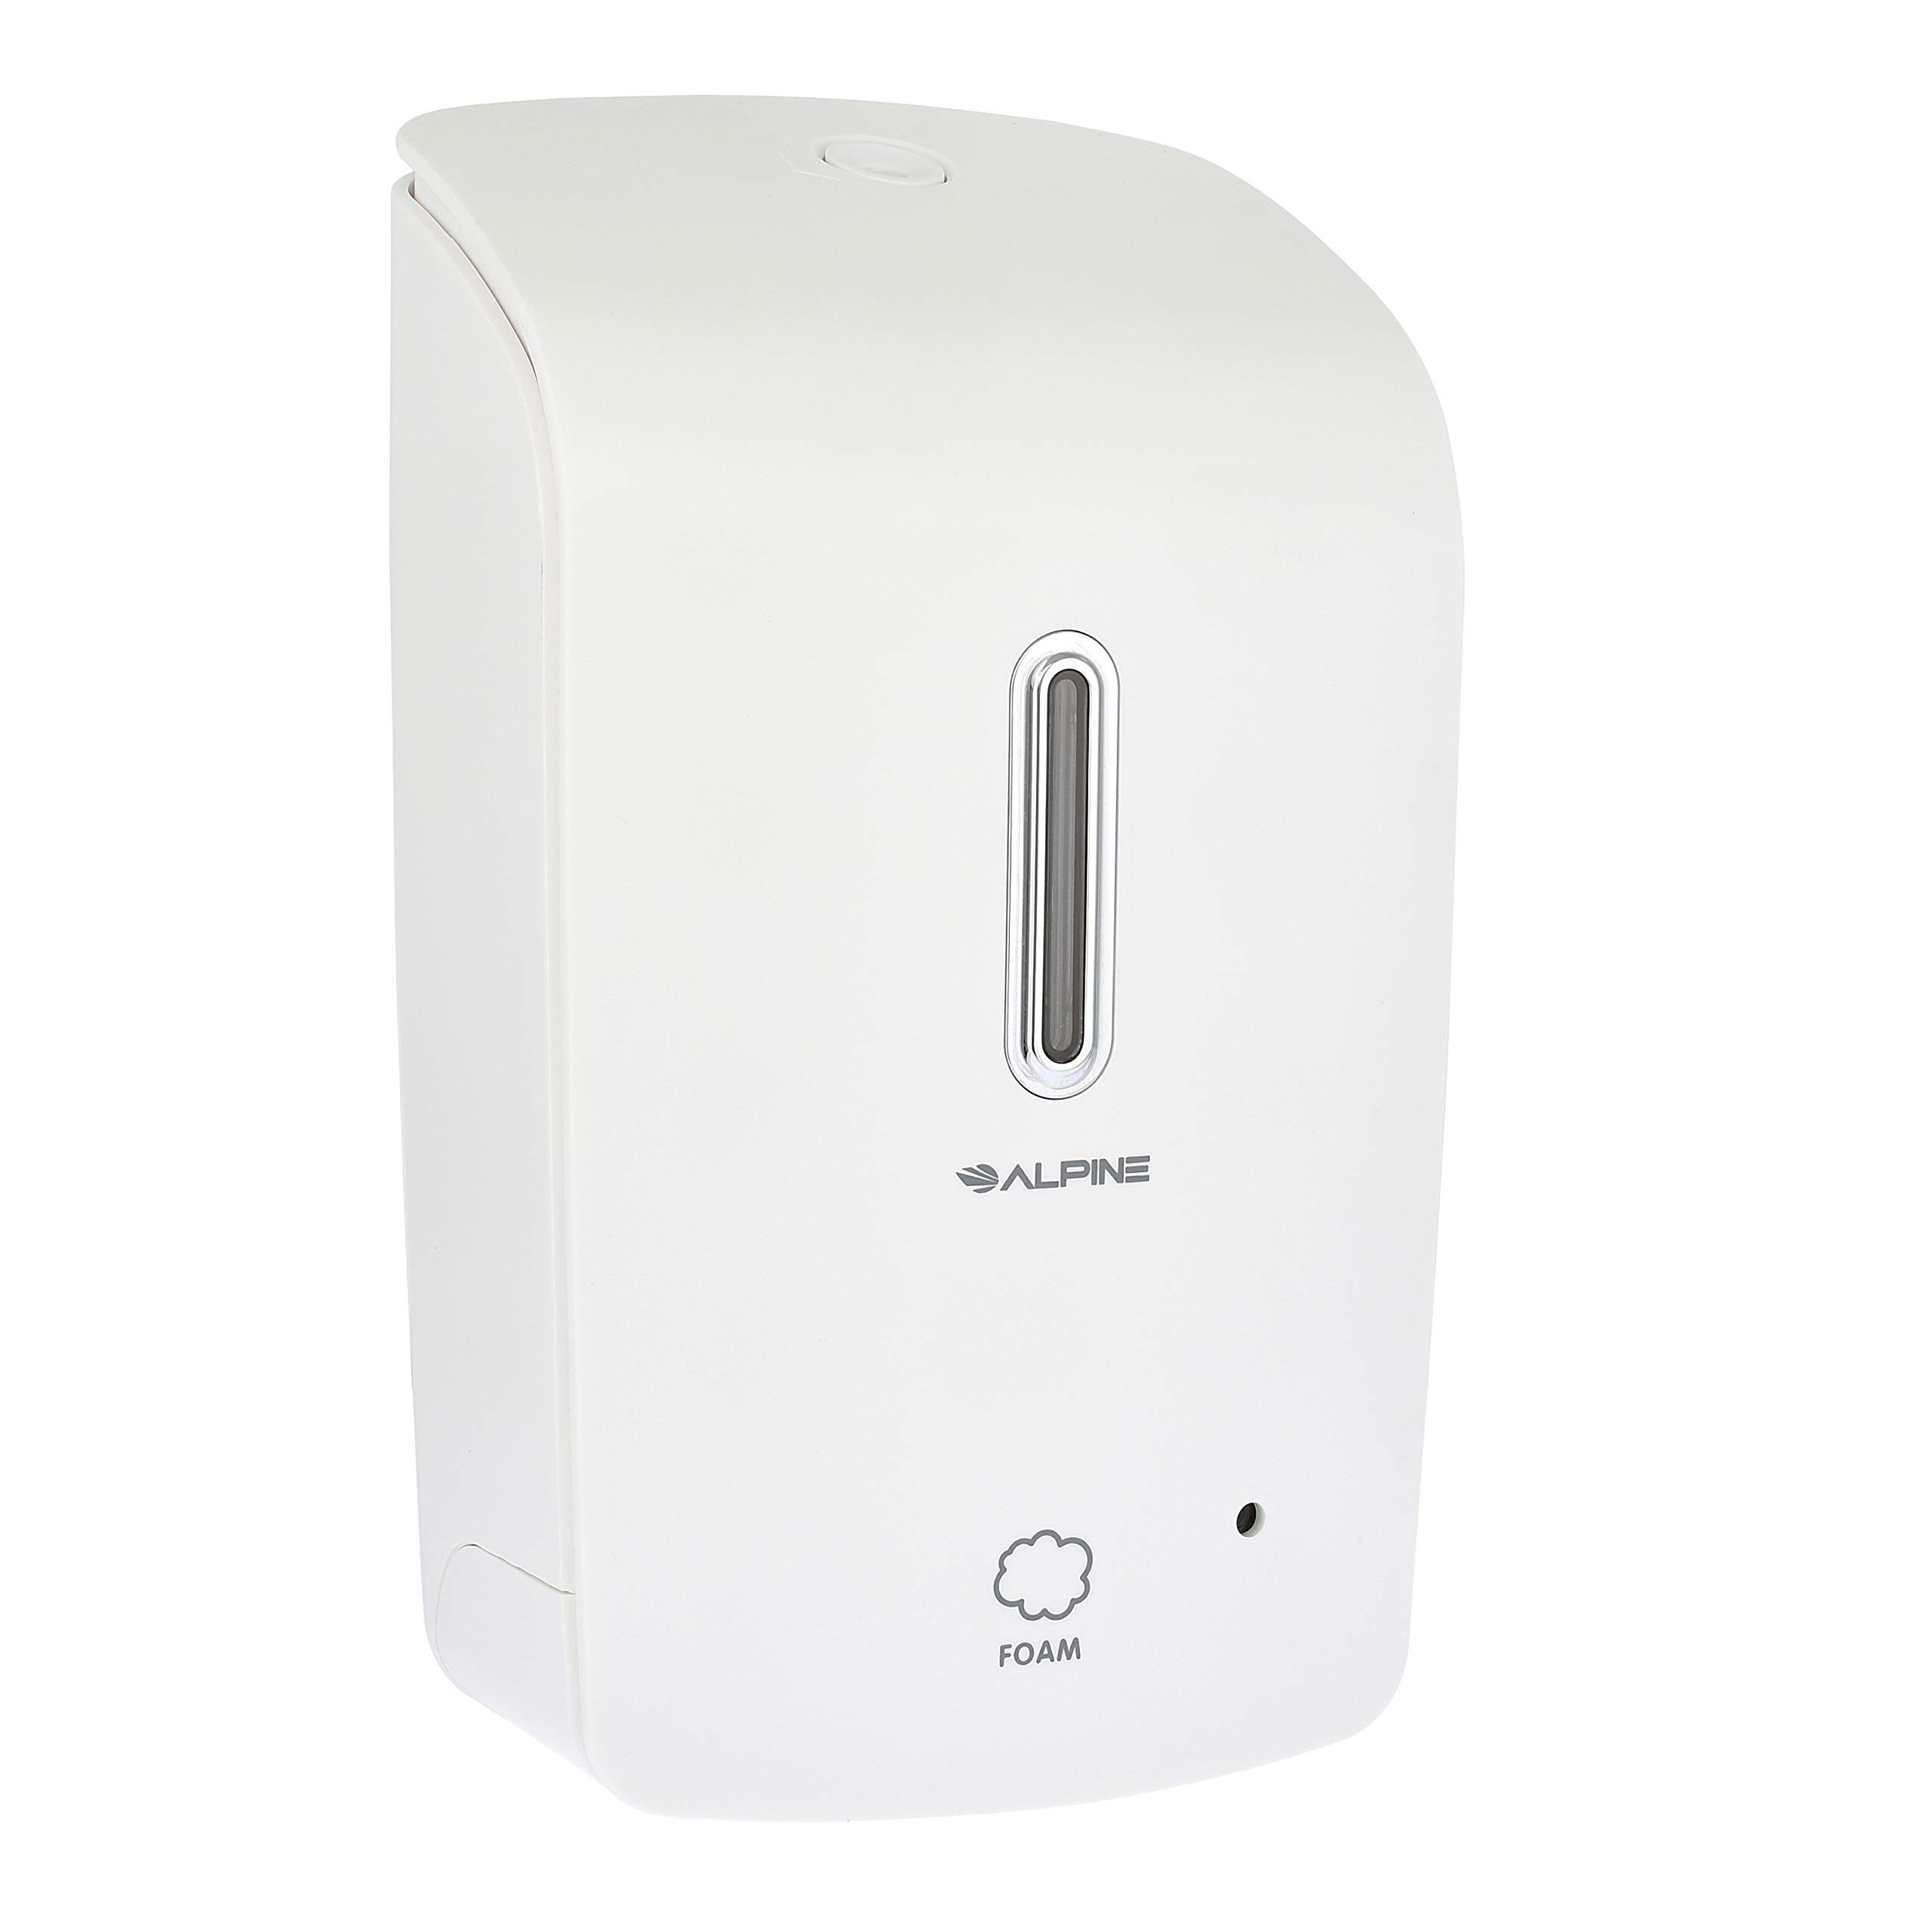 Alpine Wall Mountable, Touchless, Universal Foam Soap Dispenser for Offices, Schools, Warehouses, Food Service Facilities, and Manufacturing Plants, Battery Powered - White